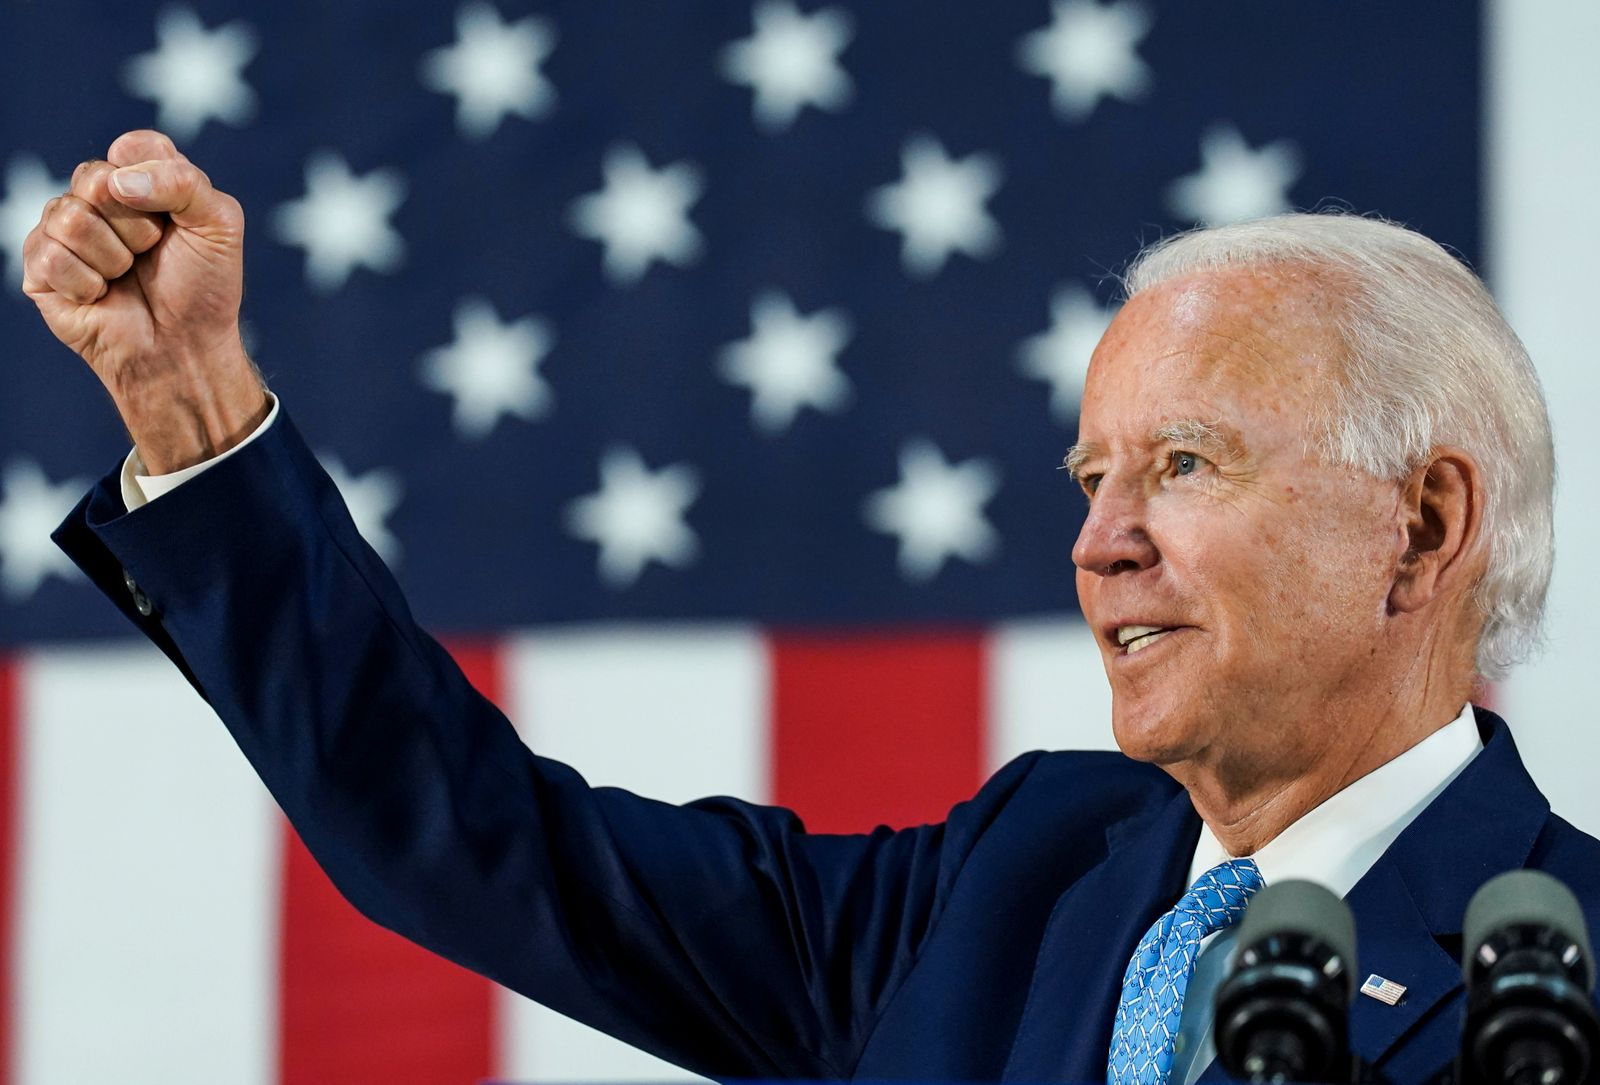 FILE PHOTO: Democratic U.S. presidential candidate Biden holds campaign event in Wilmington, Delaware